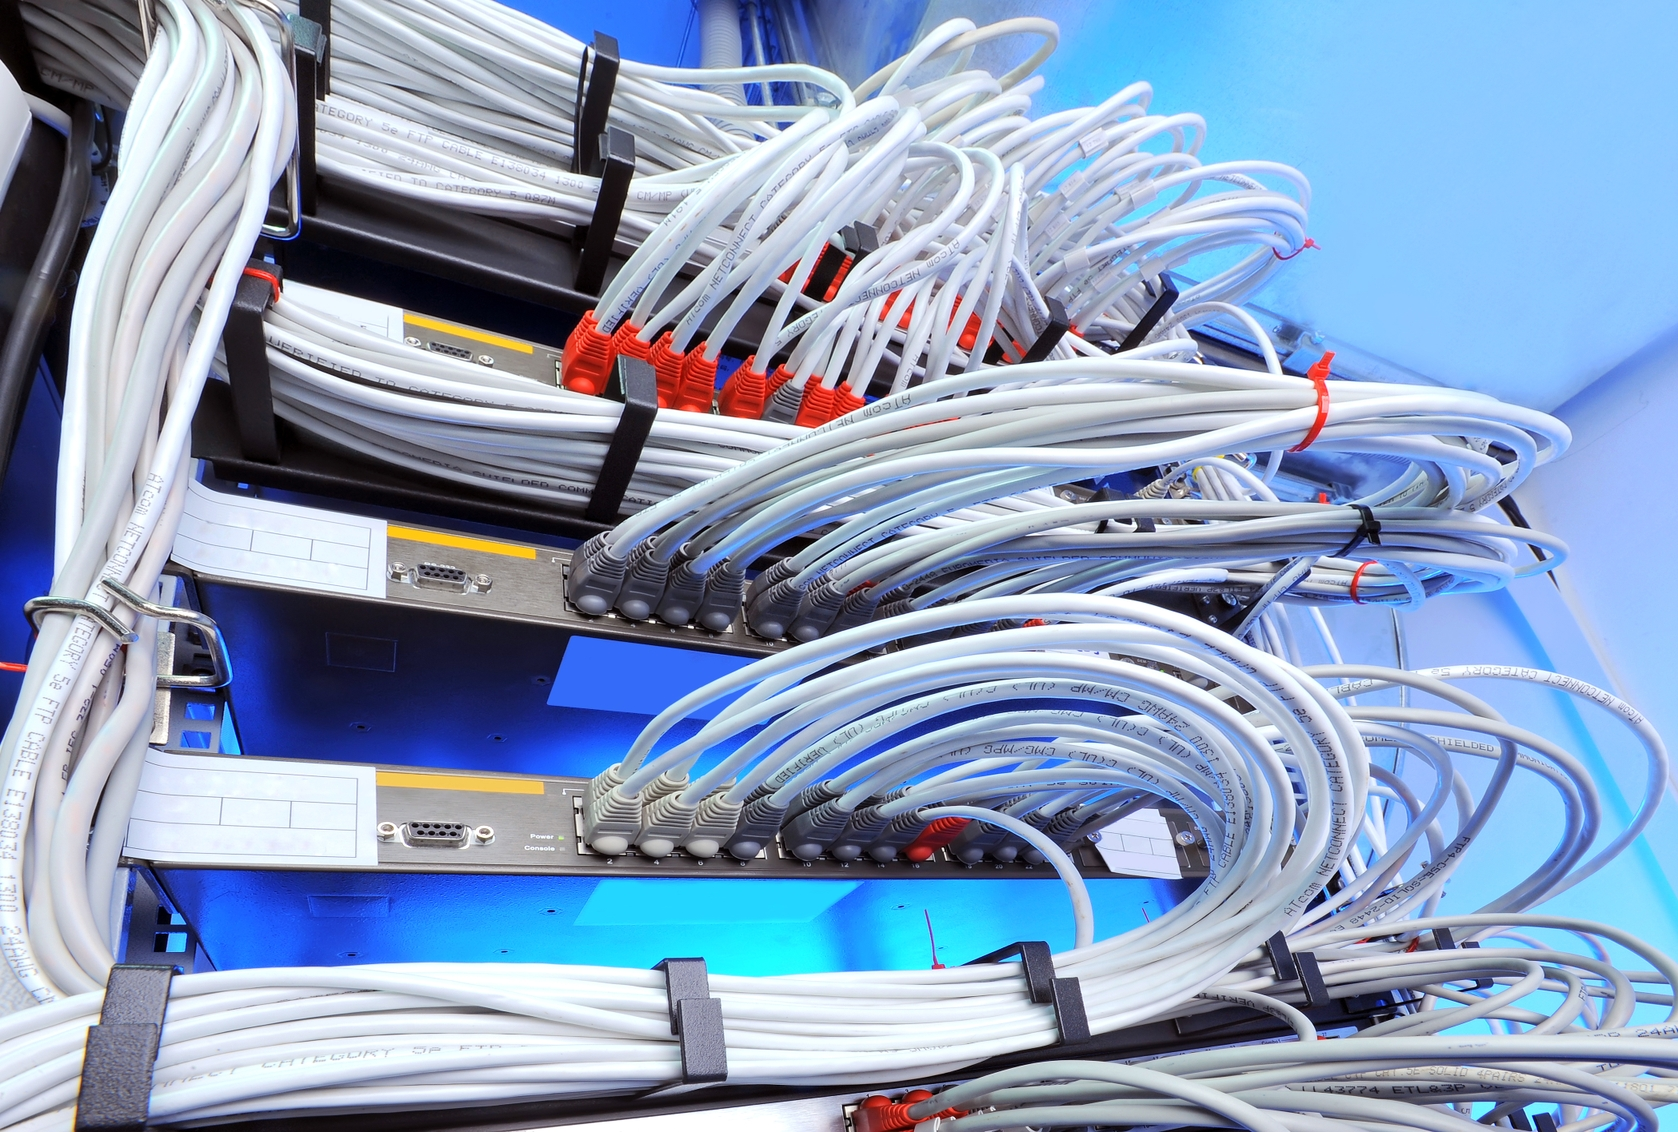 Cat6 Cabling Patch panel Company Washington DC